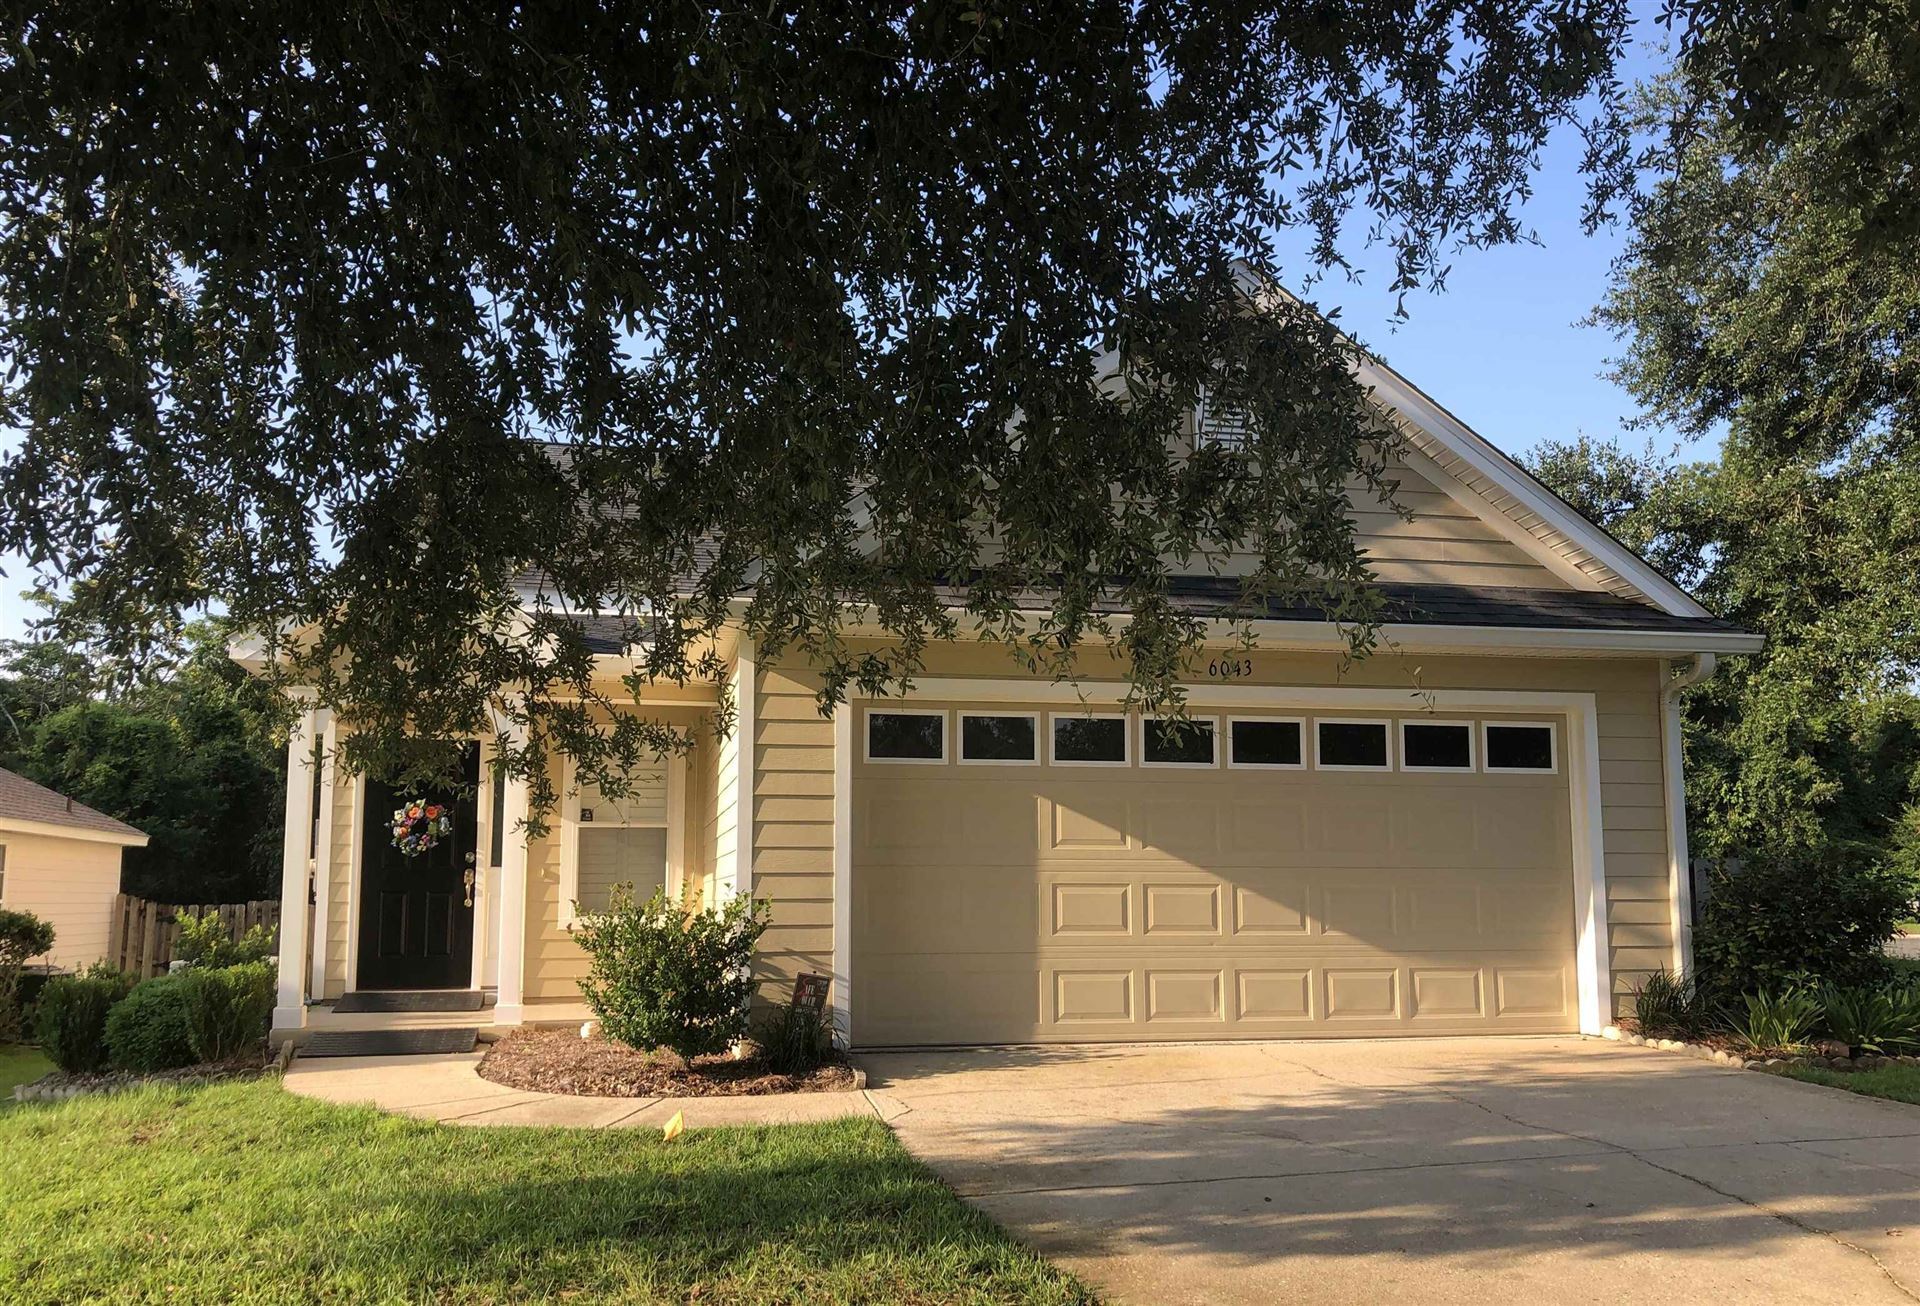 6043 Kennelly Court, Tallahassee, FL 32317 - MLS#: 337545